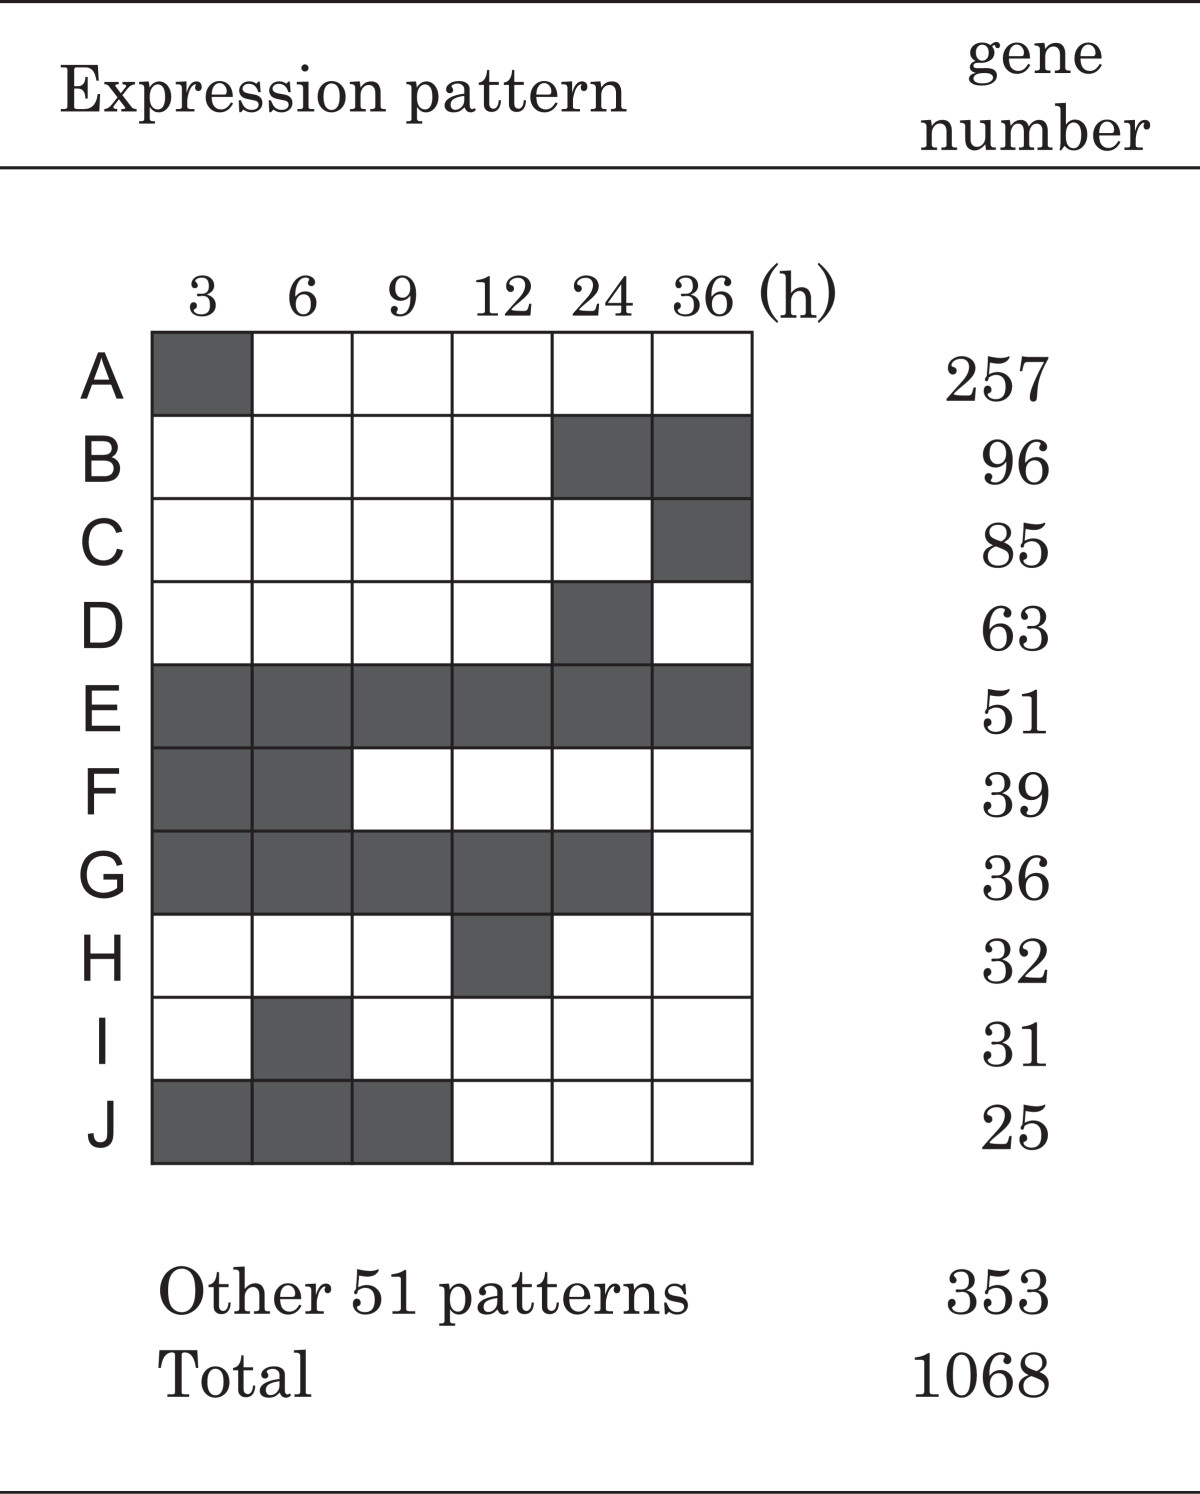 http://static-content.springer.com/image/art%3A10.1186%2F1939-8433-6-16/MediaObjects/12284_2012_Article_53_Fig1_HTML.jpg